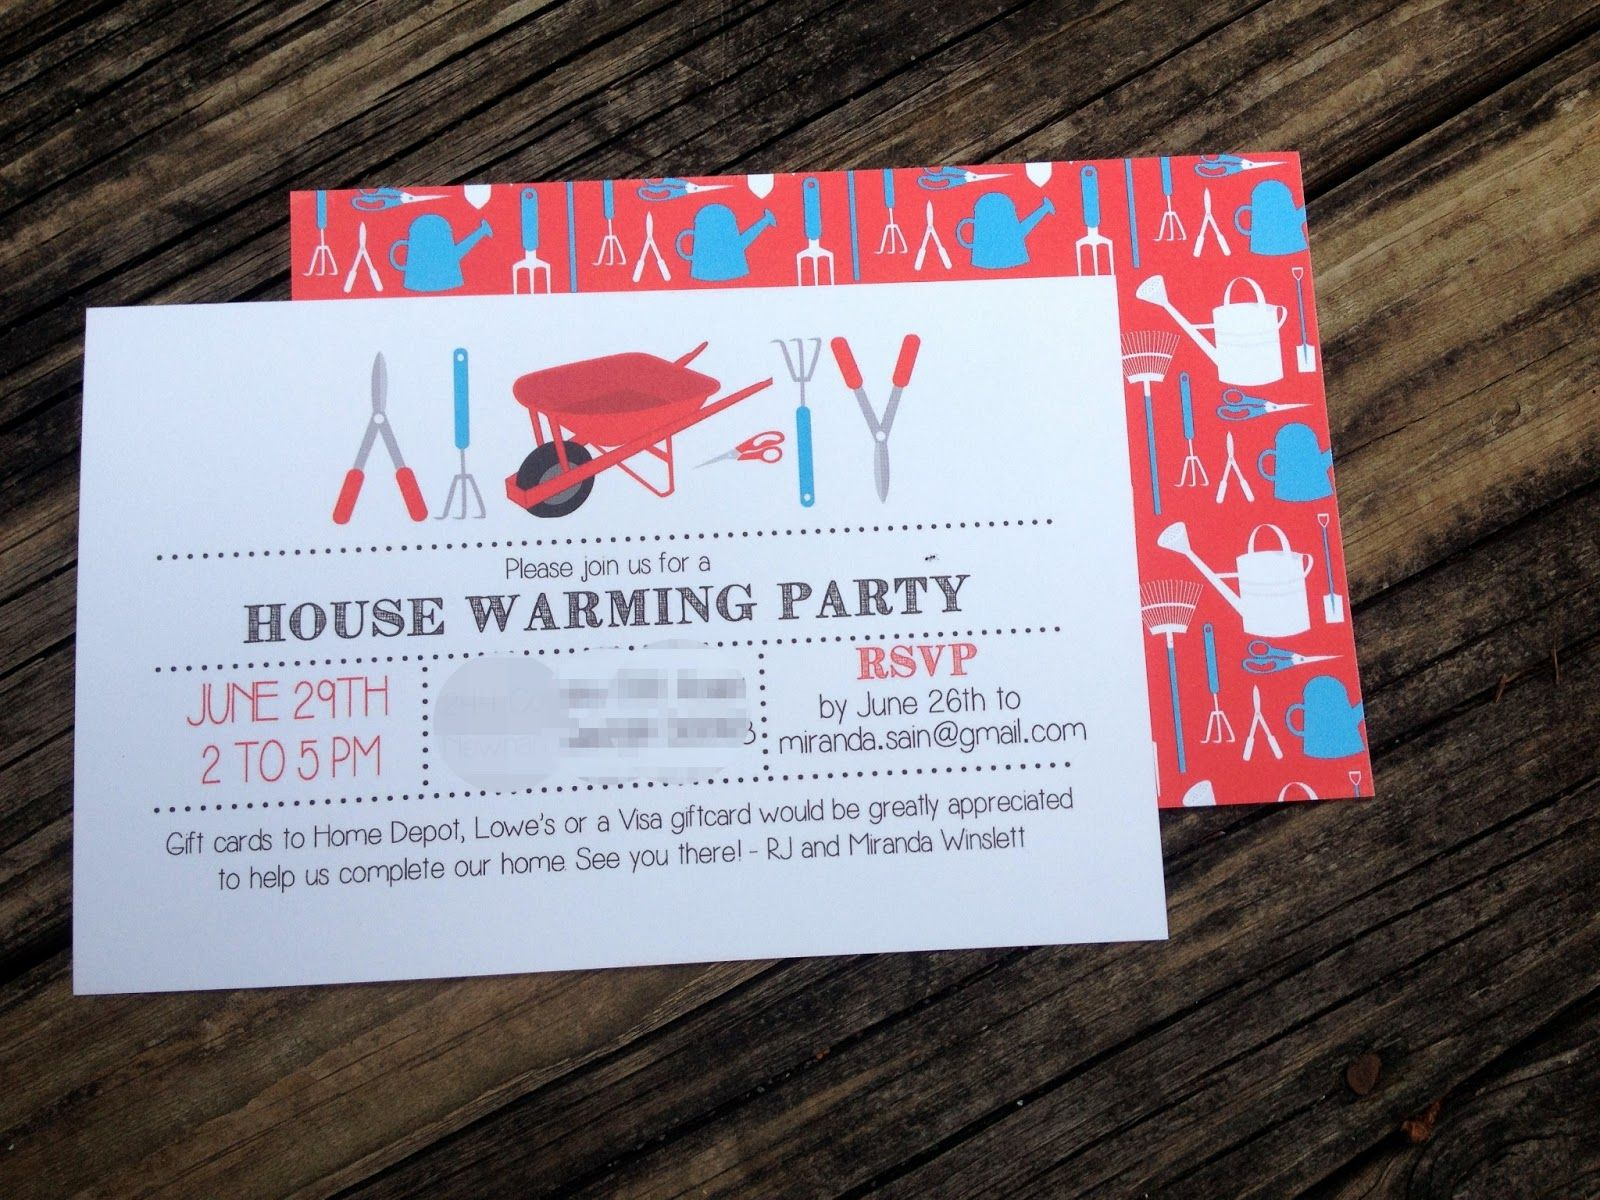 Housewarming Party Invitation Asking For Gifts And Housewarming